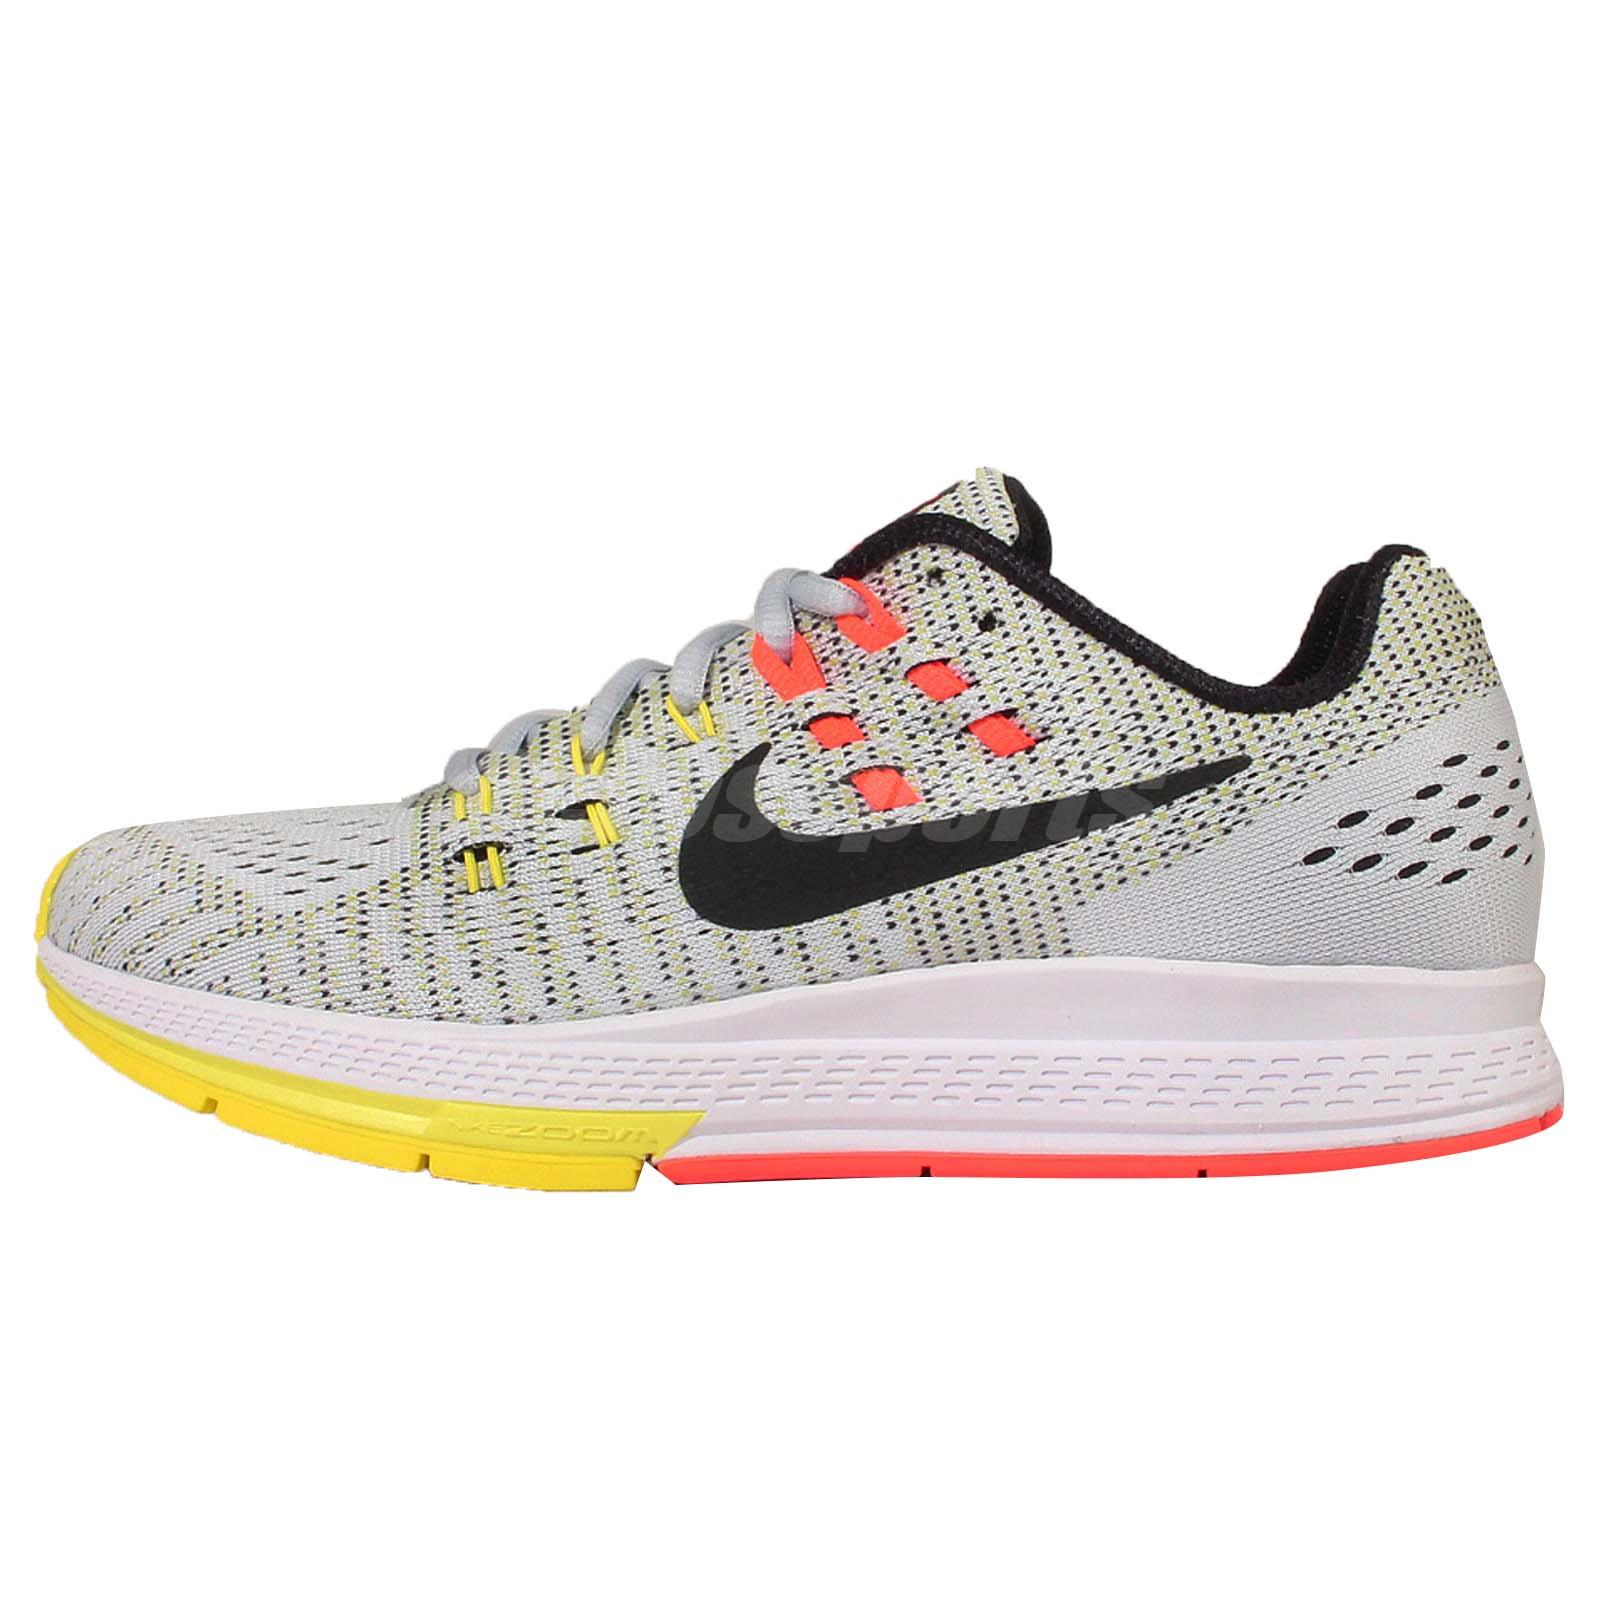 wmns nike air zoom structure 19 grey black womens running. Black Bedroom Furniture Sets. Home Design Ideas